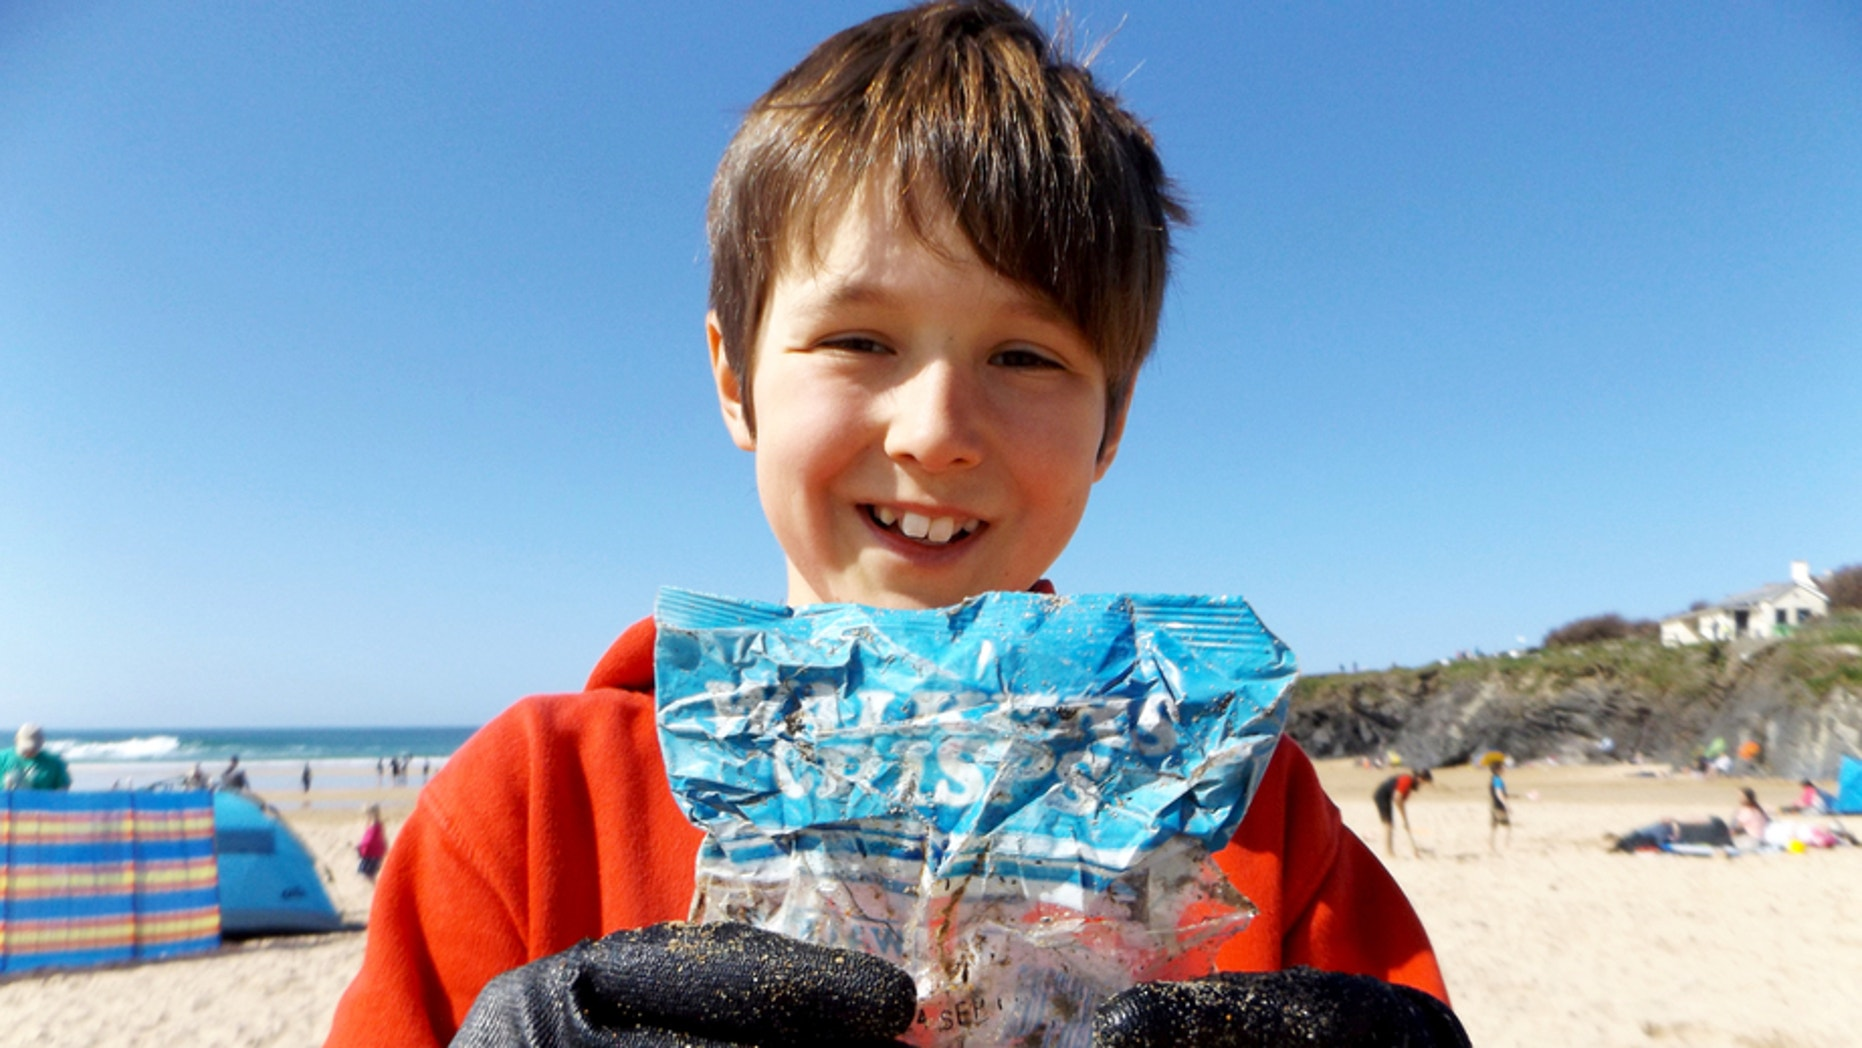 A 10-year-old boy who was cleaning up the beach was left shocked when he discovered a bag of chips from the 1980's.